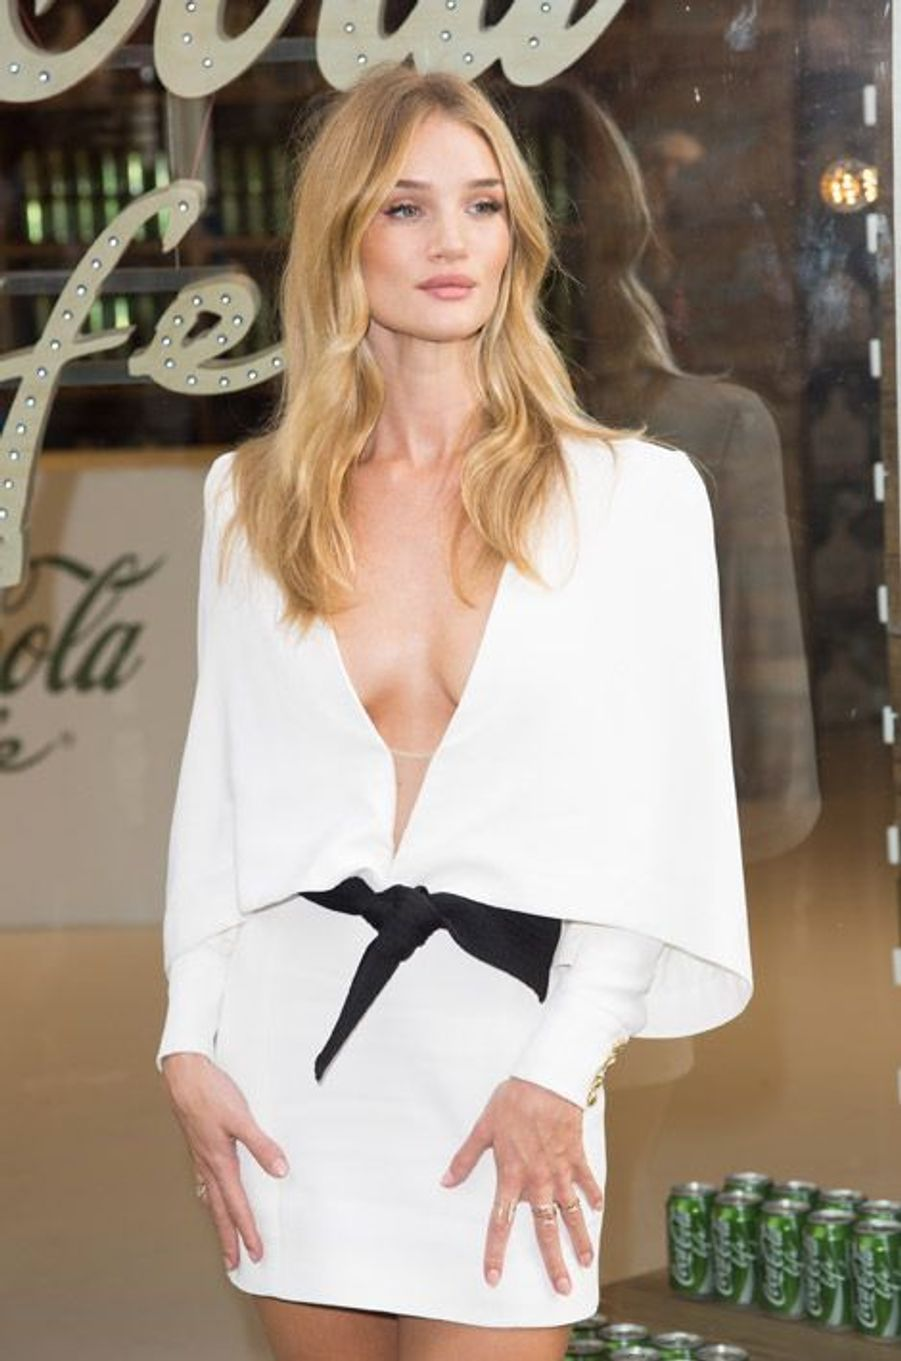 Le mannequin Rosie Huntington-Whiteley à Londres, le 19 septembre 2014